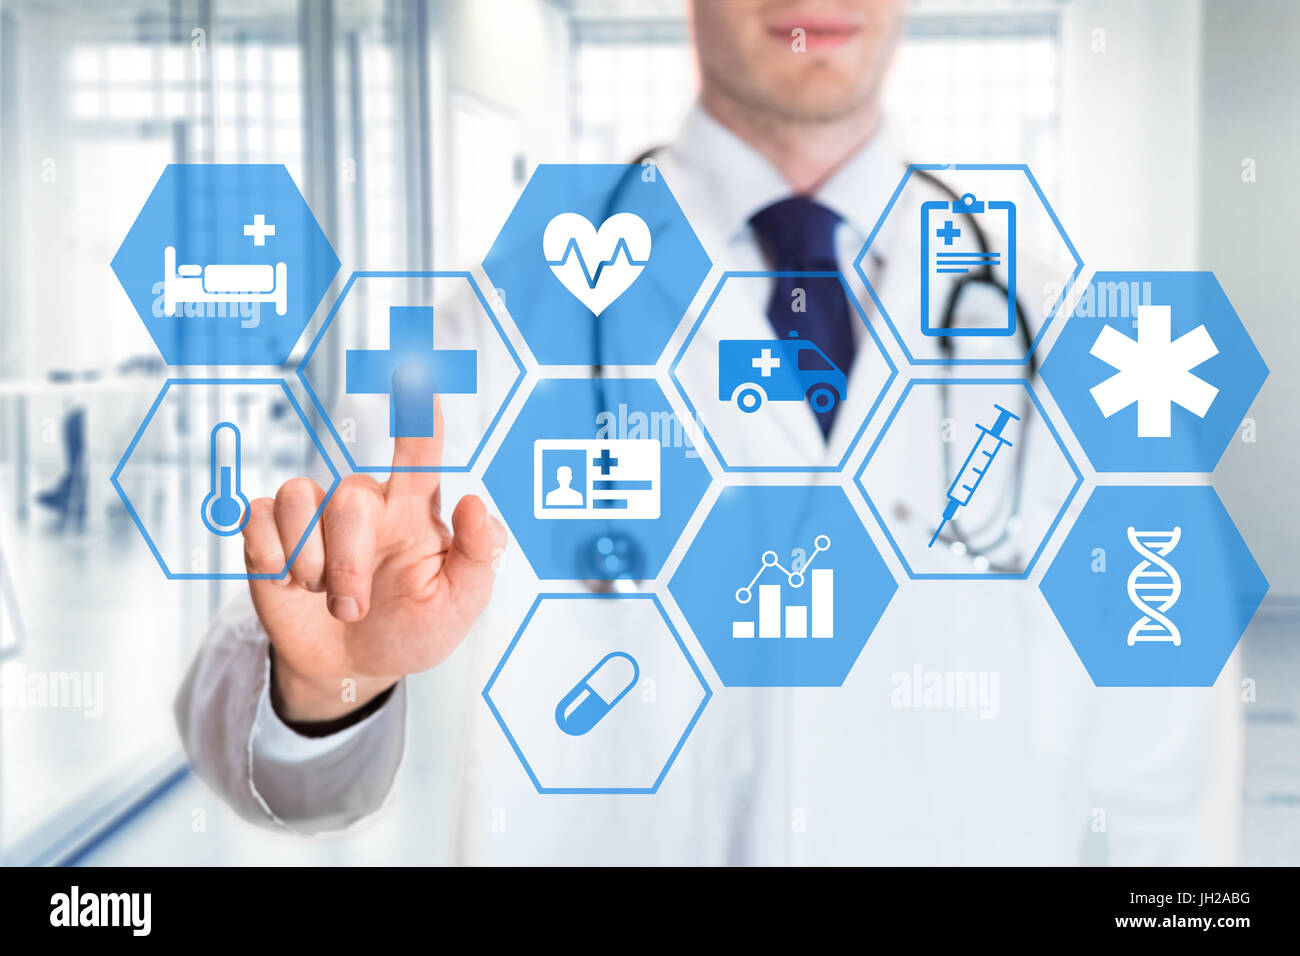 hight resolution of medical doctor touching icons of health care services on a digital screen with hospital interior